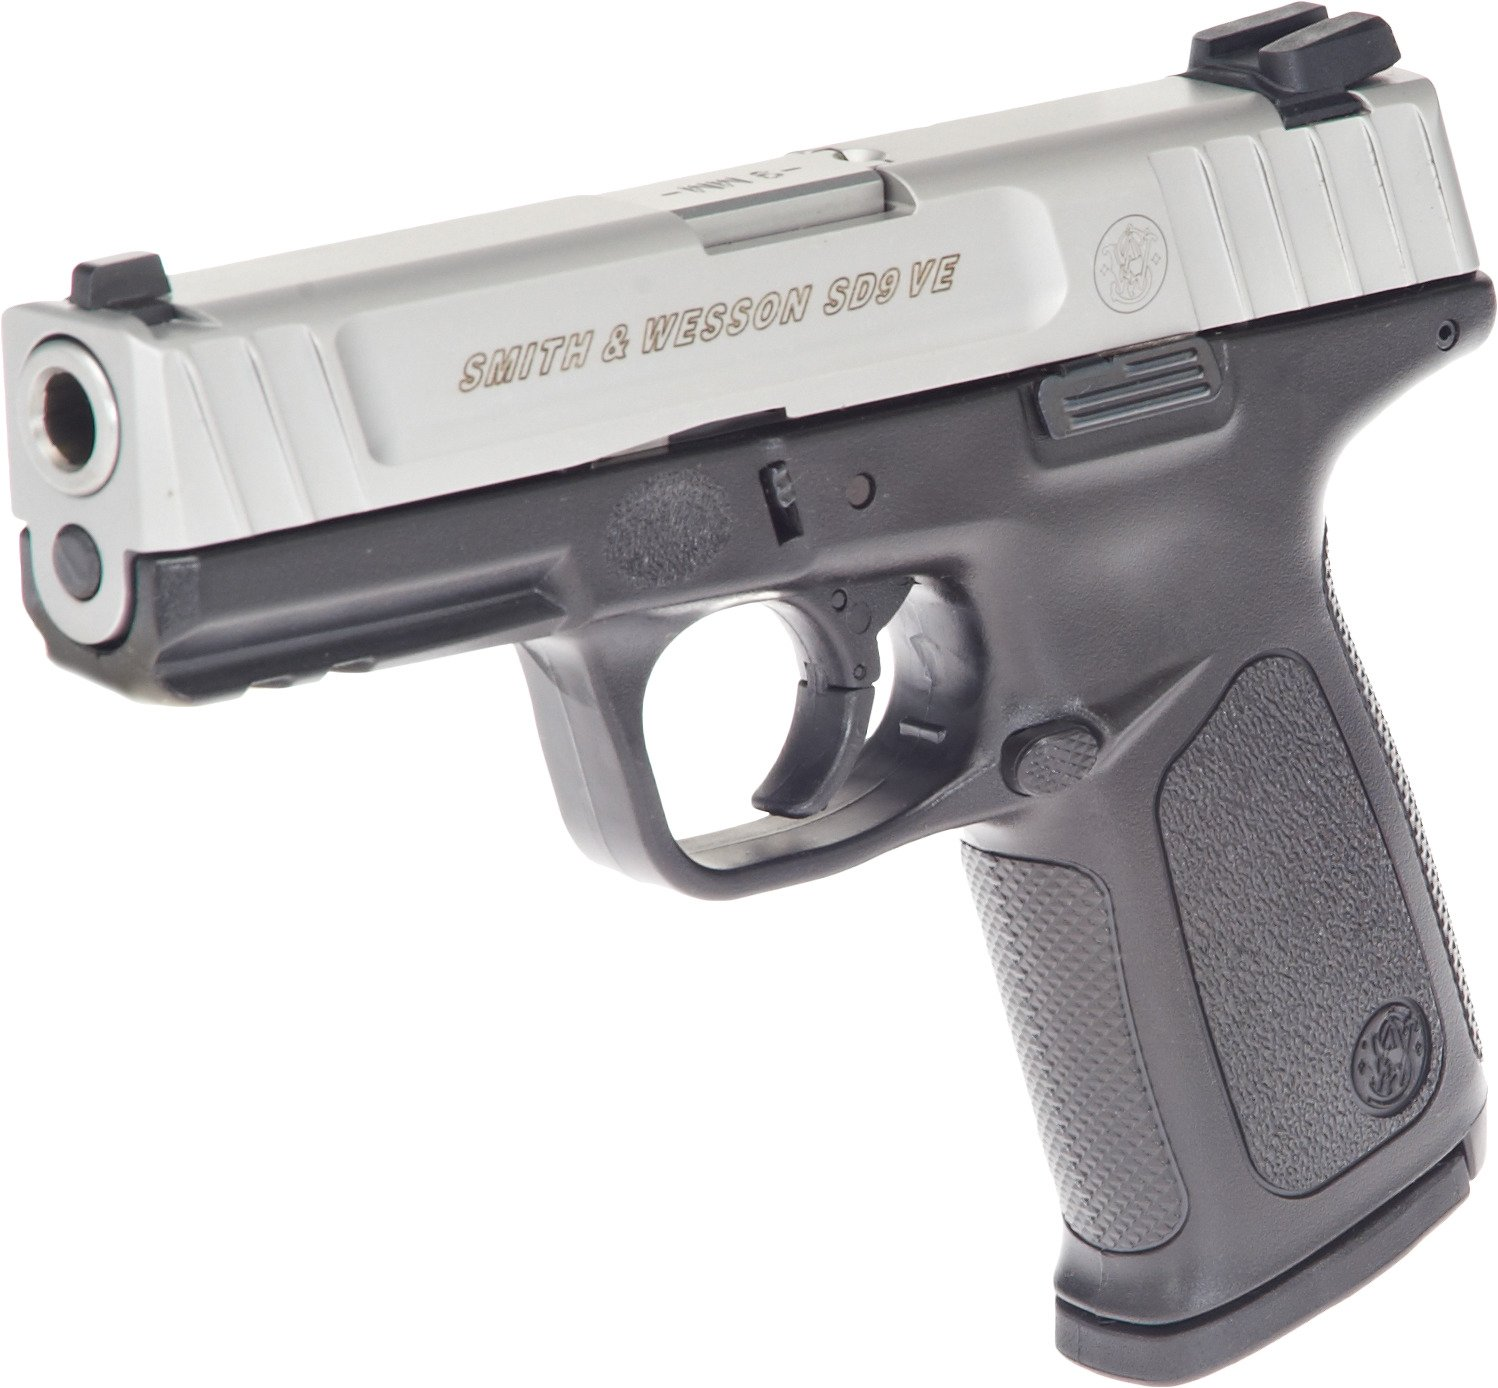 10211125 smith & wesson sd9ve 9mm pistol academy